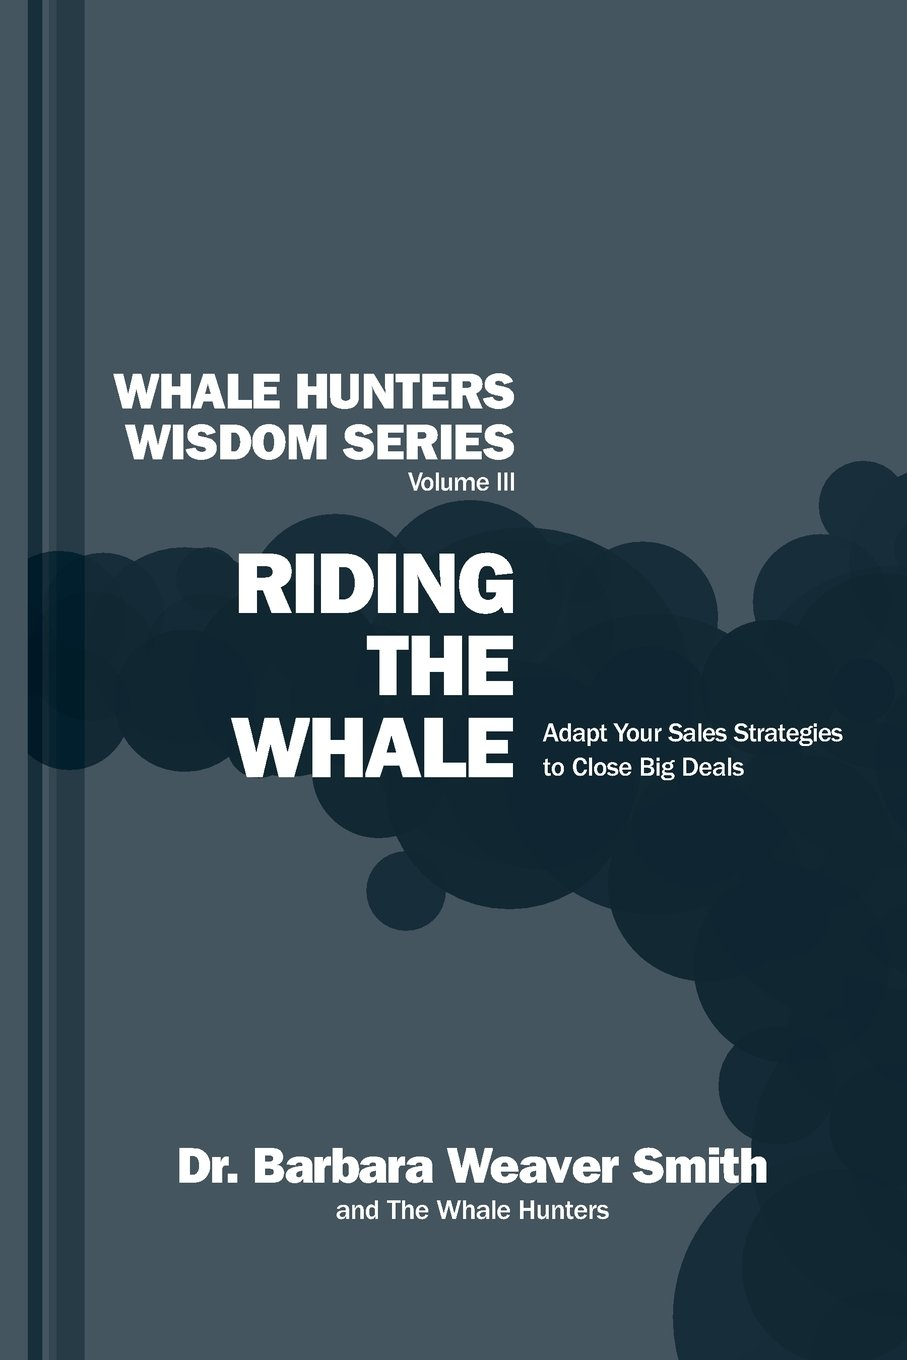 Sales Training Book Riding the Whale